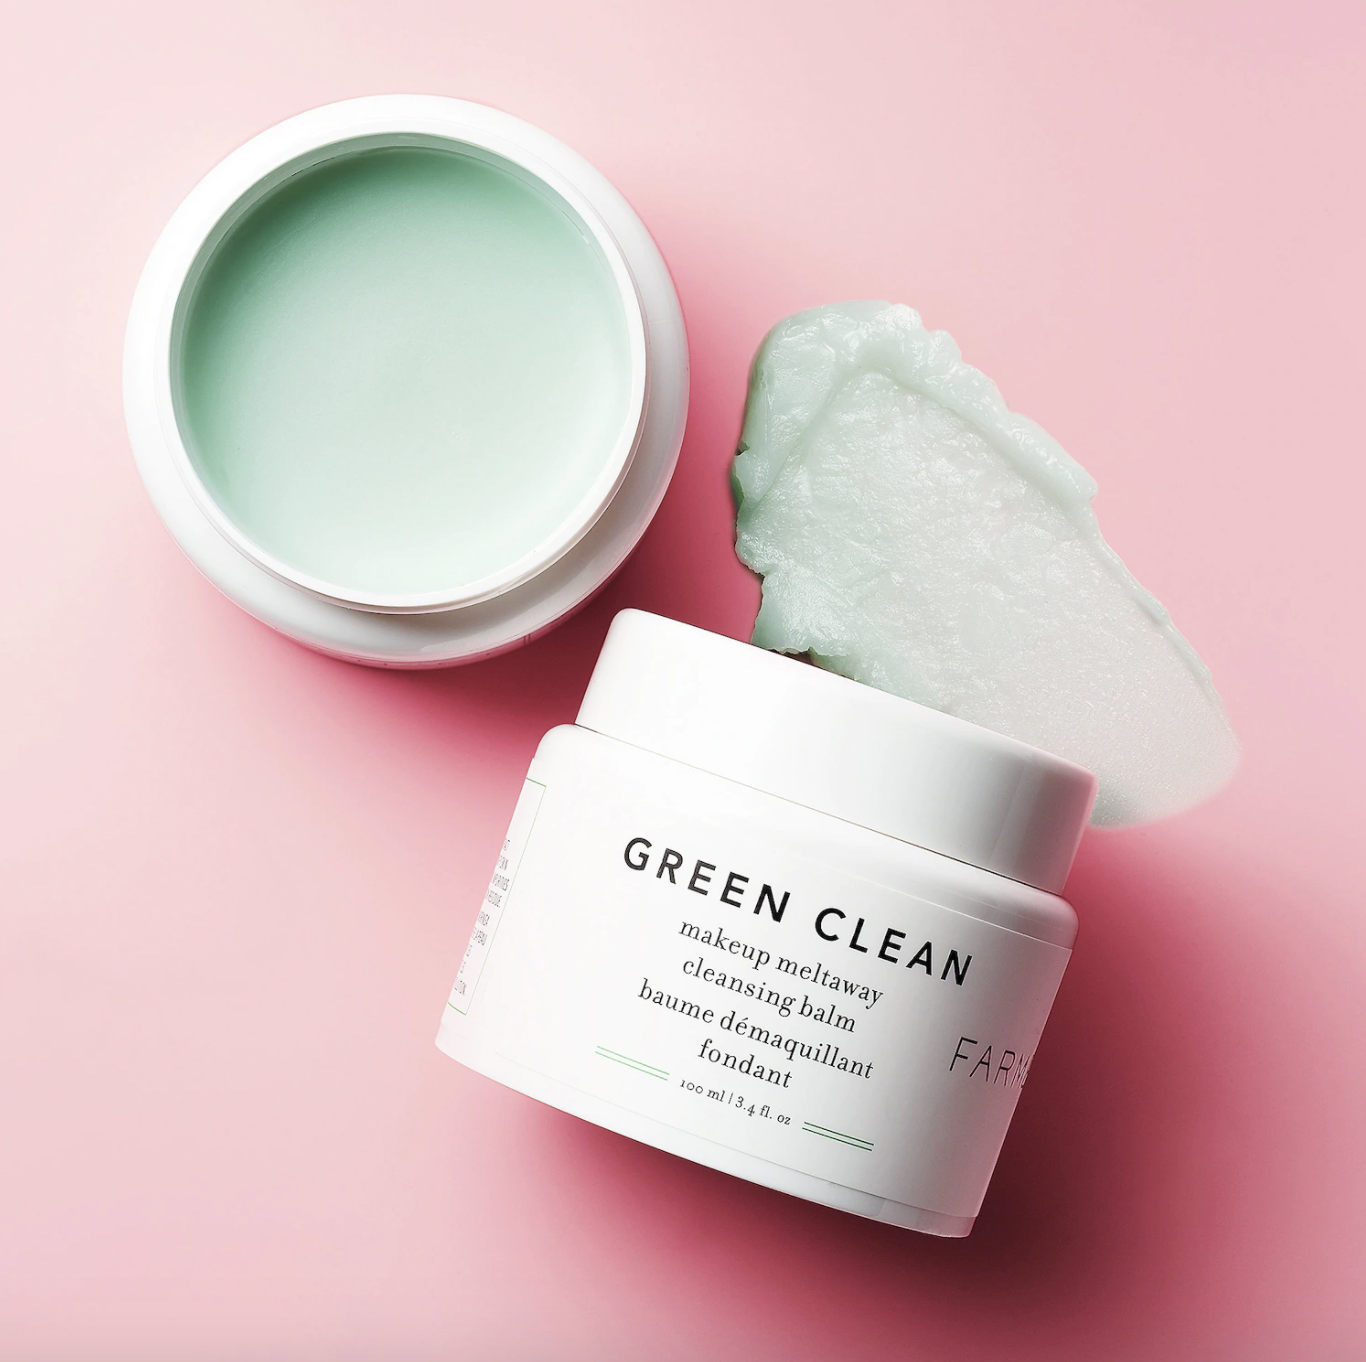 the Green Clean Makeup Removing Cleansing Balm